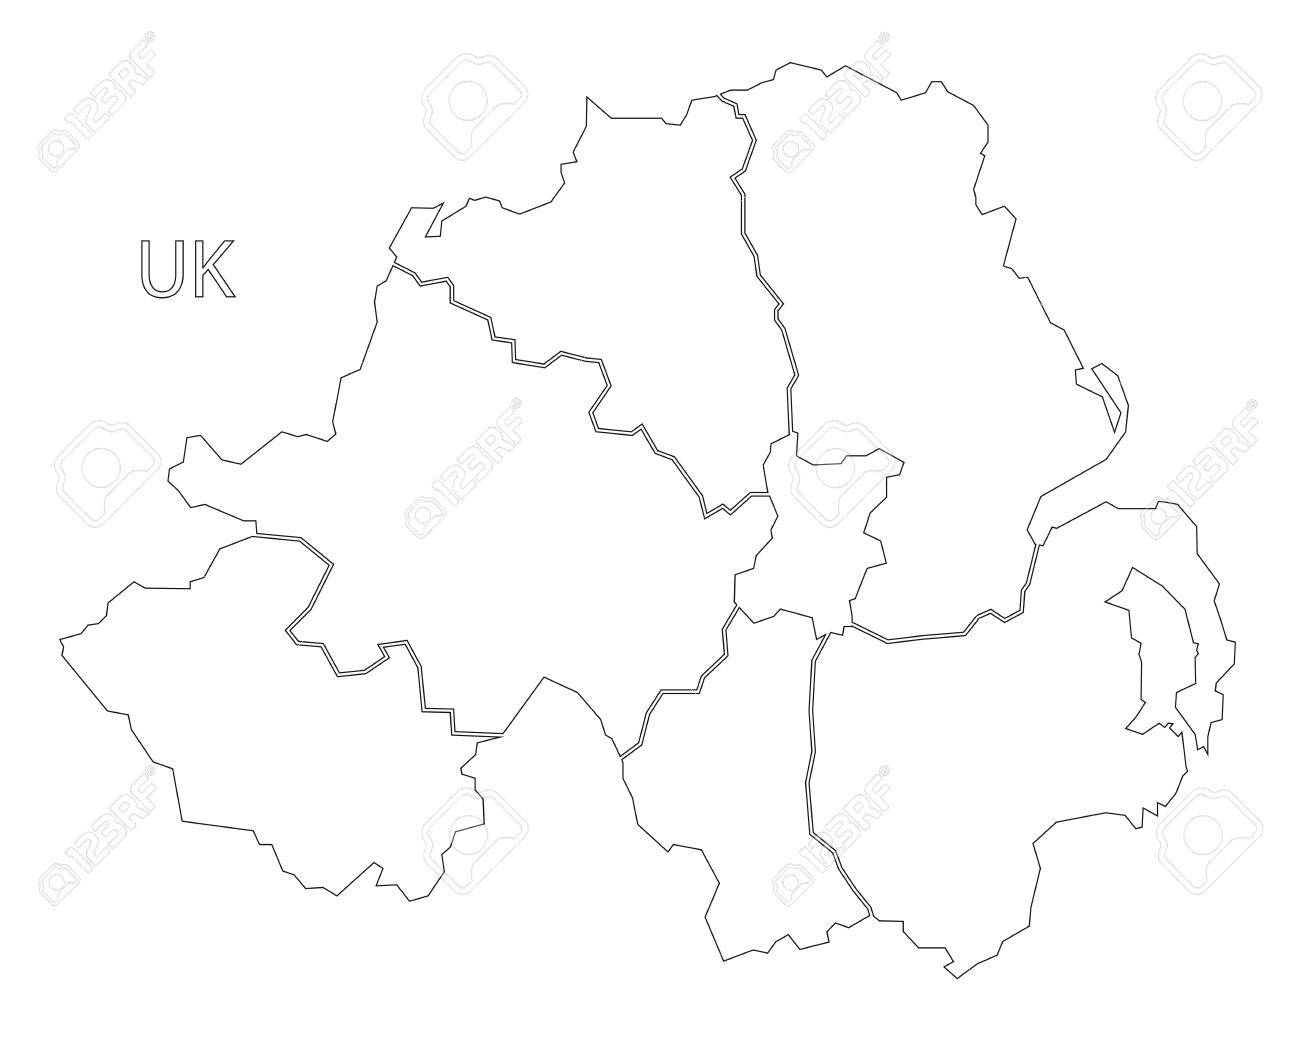 Image of: Northern Ireland Outline Silhouette Map Illustration With Counties Royalty Free Cliparts Vectors And Stock Illustration Image 75080270